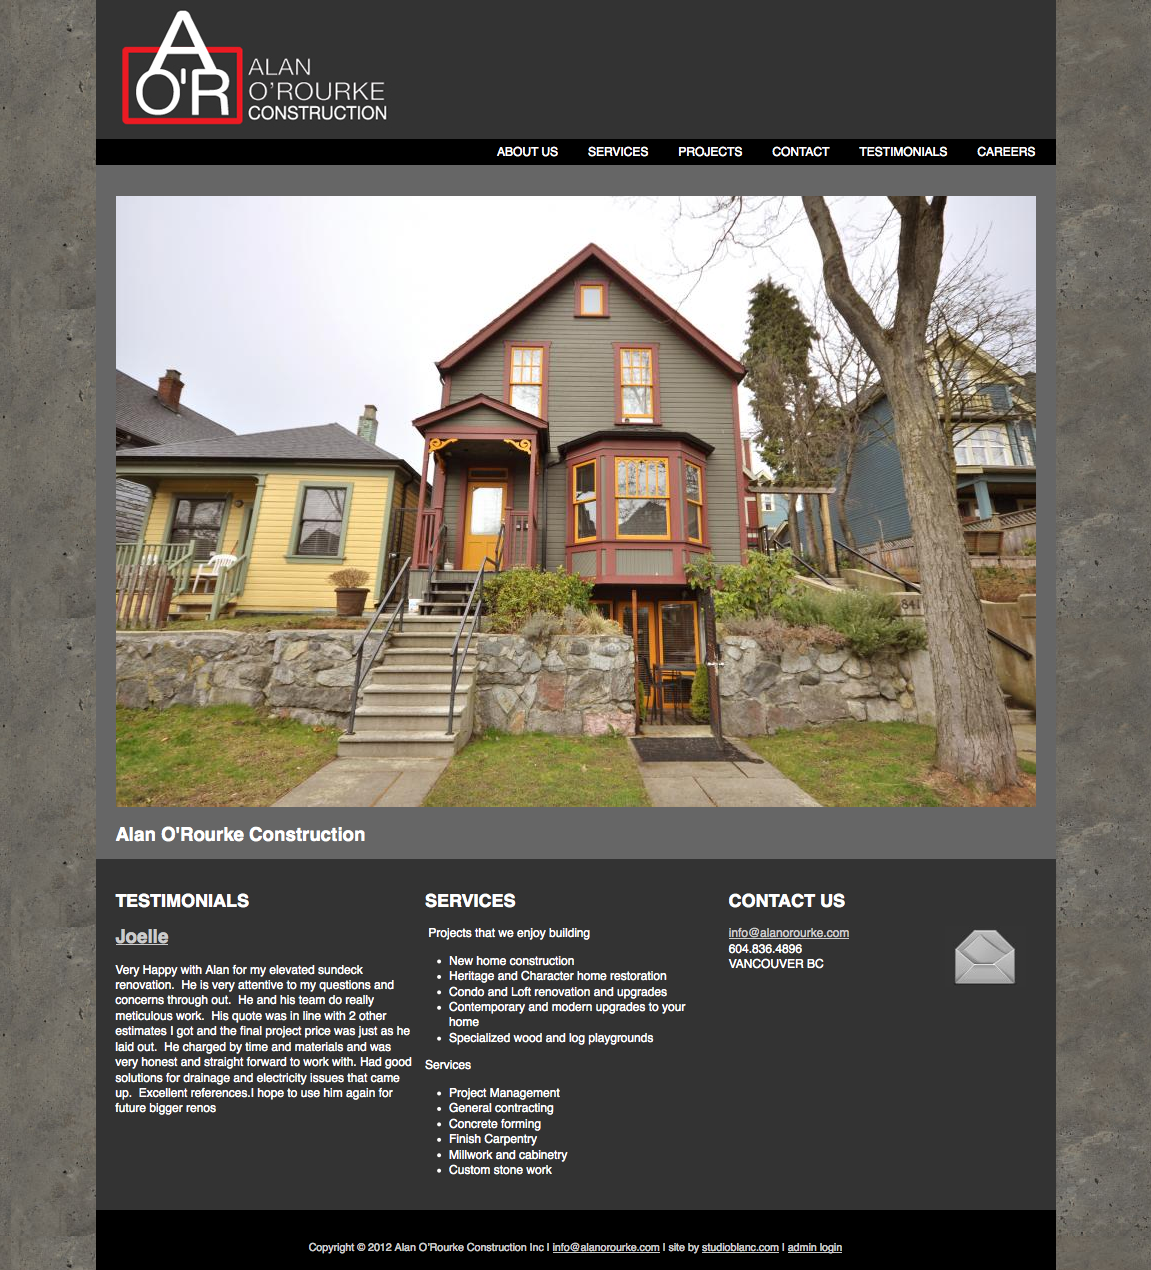 Alan O'Rourke Construction Inc. Web Site